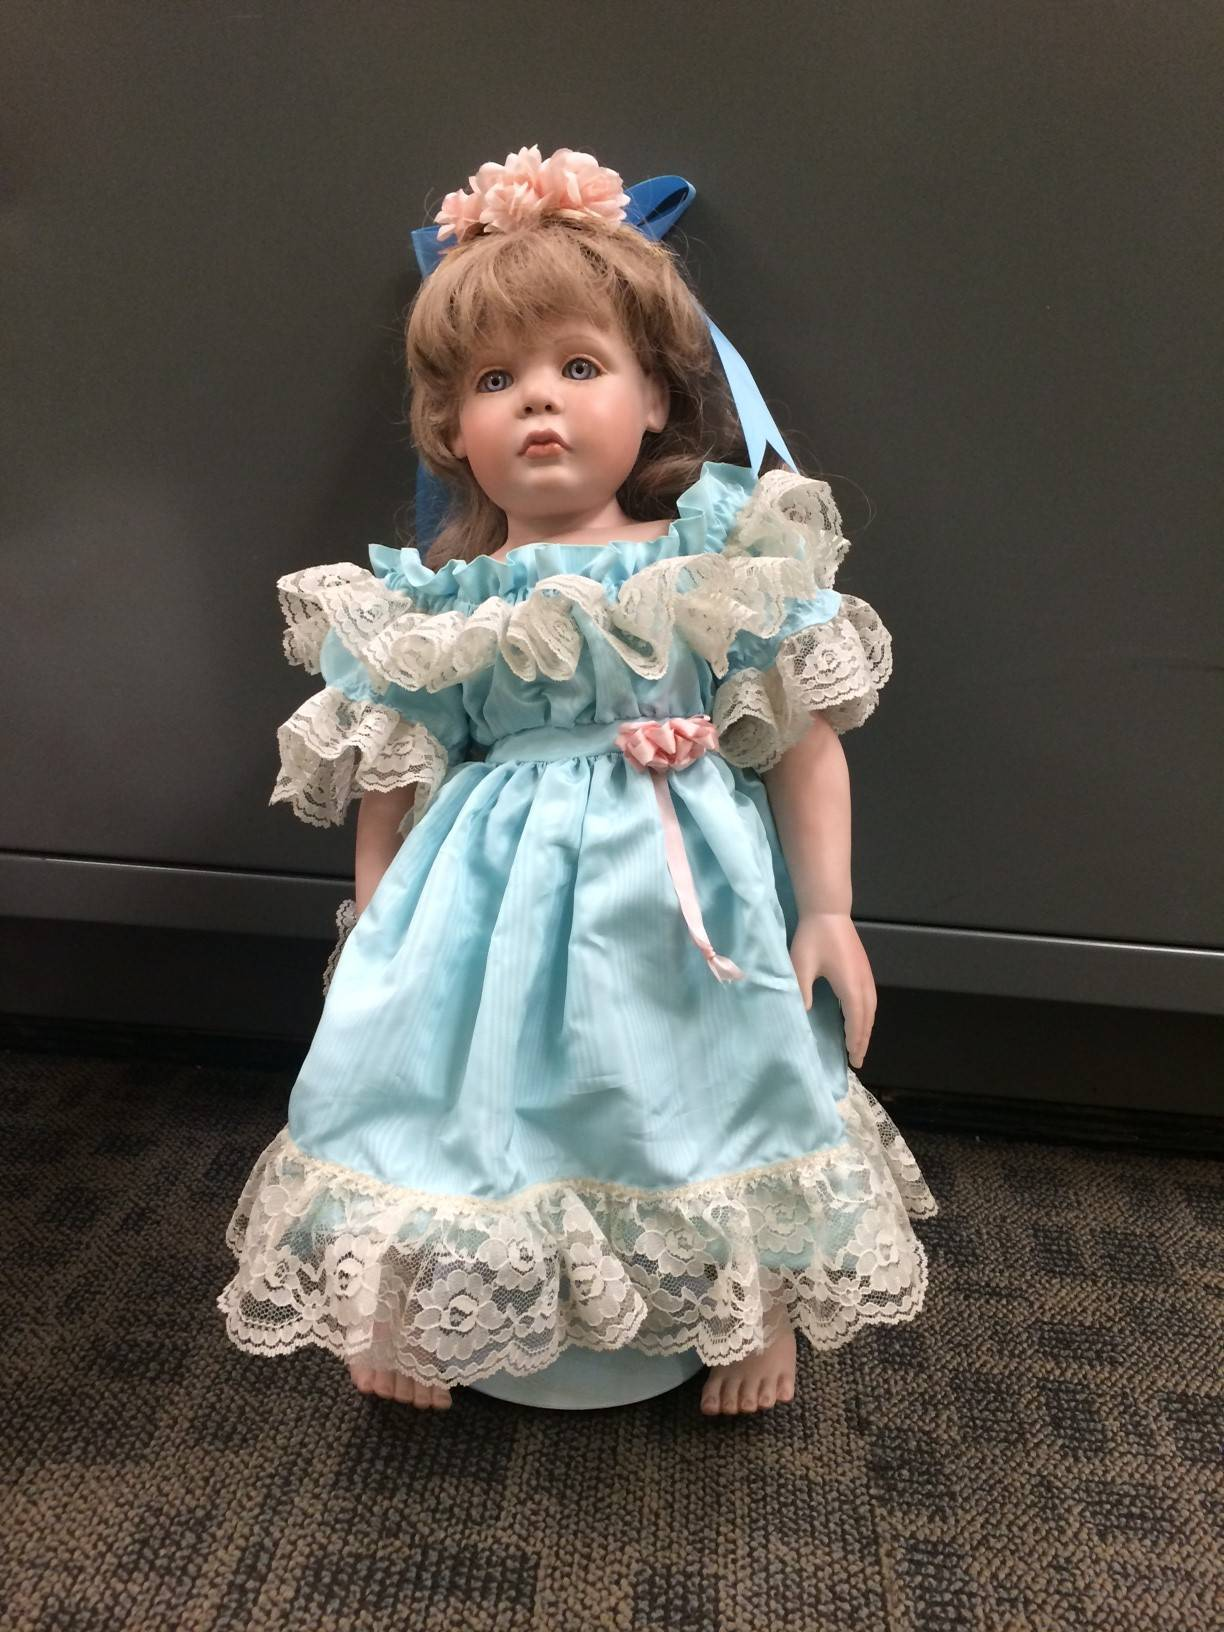 One of several dolls that have been found left on doorsteps in the last week in San Clemente, Calif. As many as eight homes have had porcelain dolls left on their doorsteps.